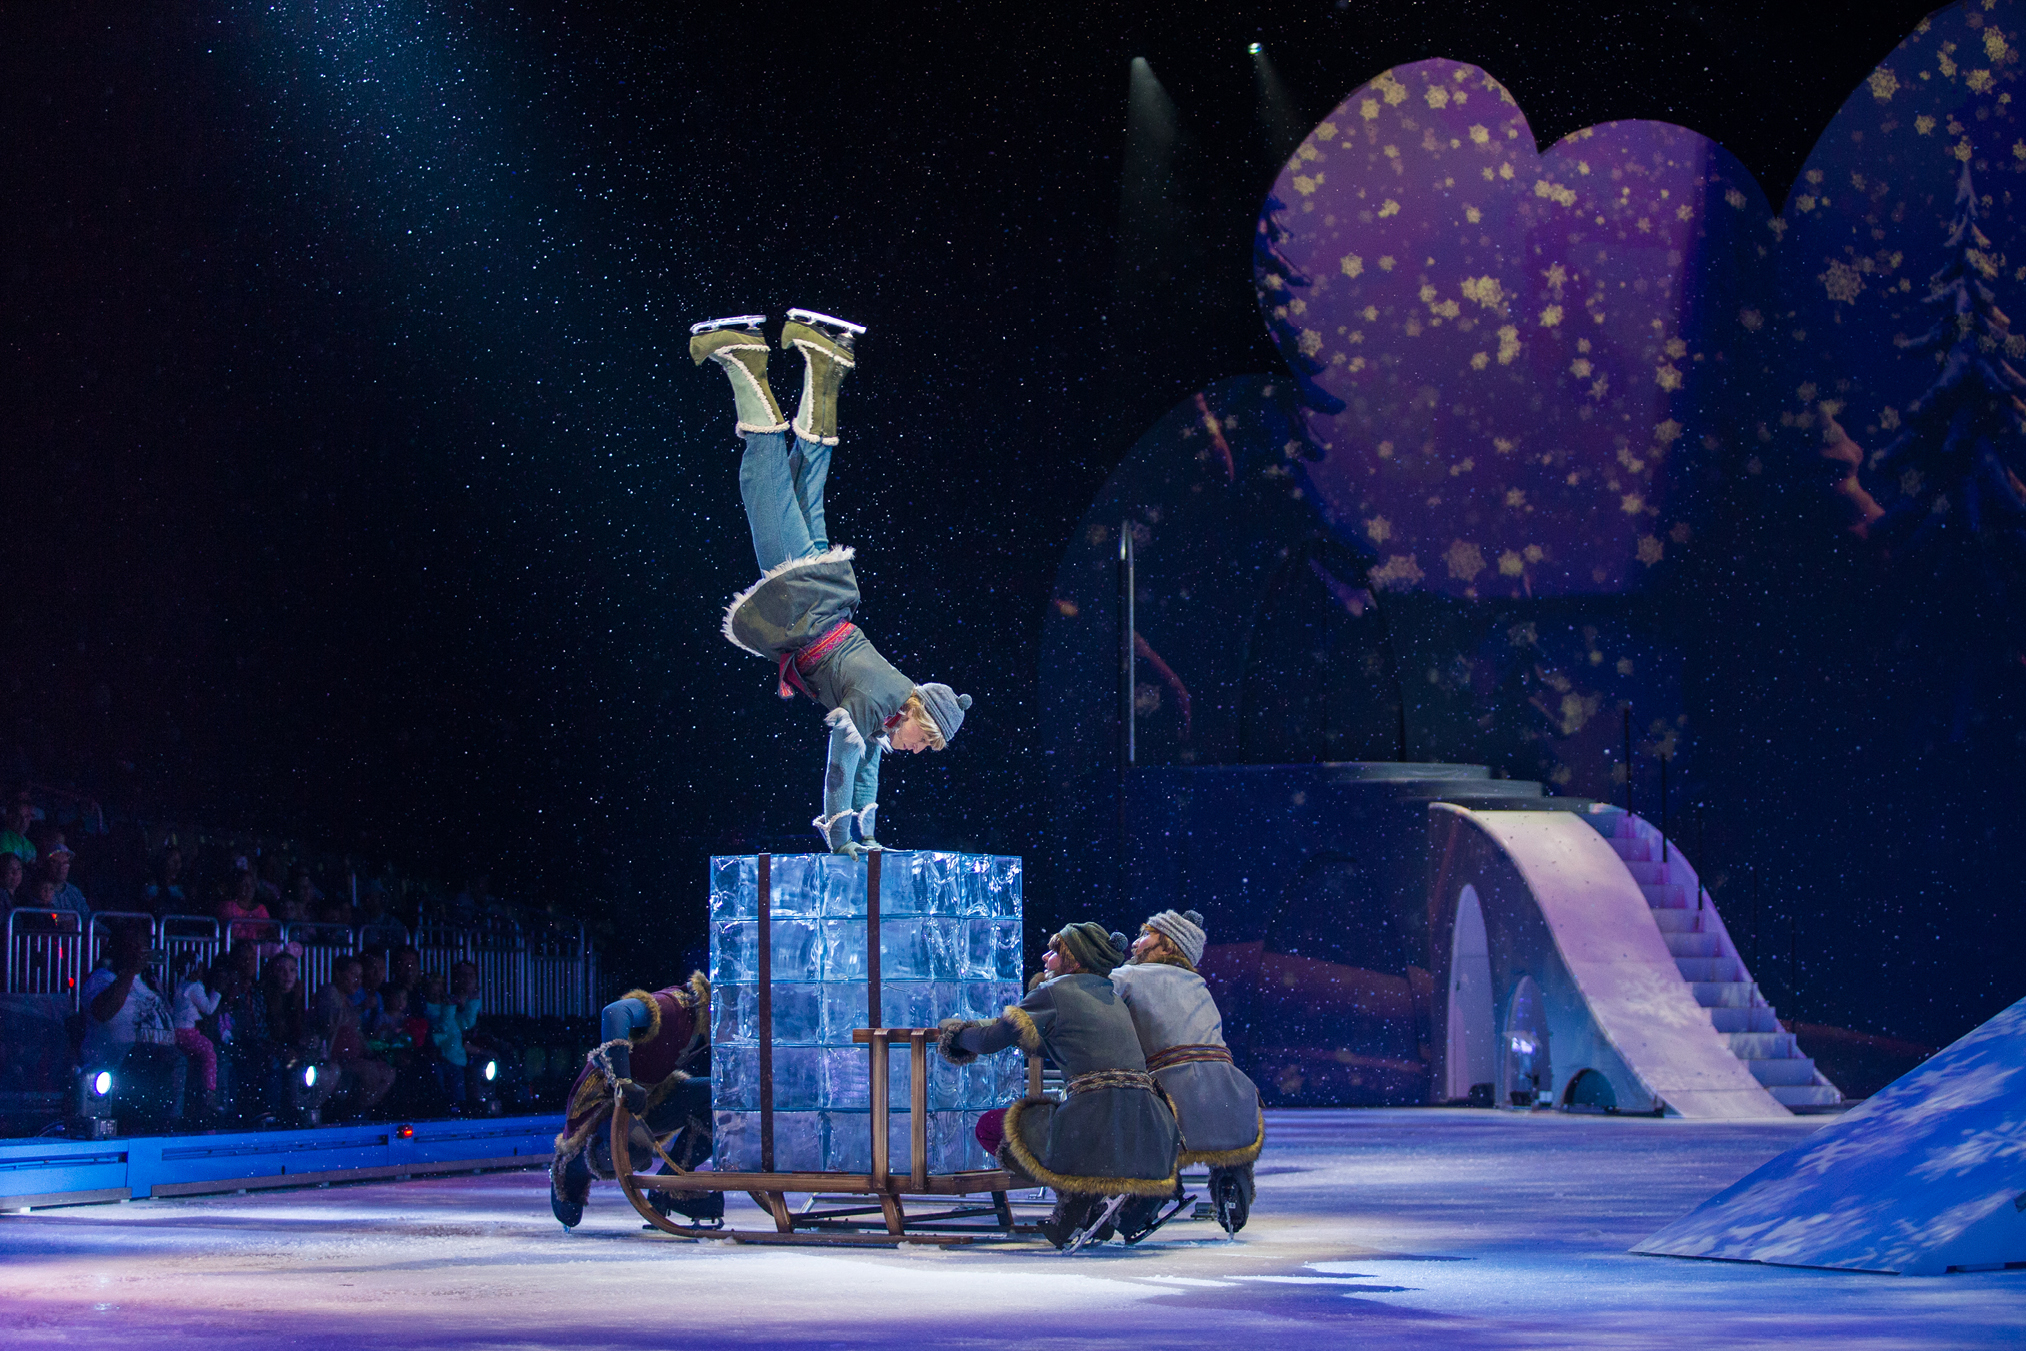 Disney's Kristoff on Ice